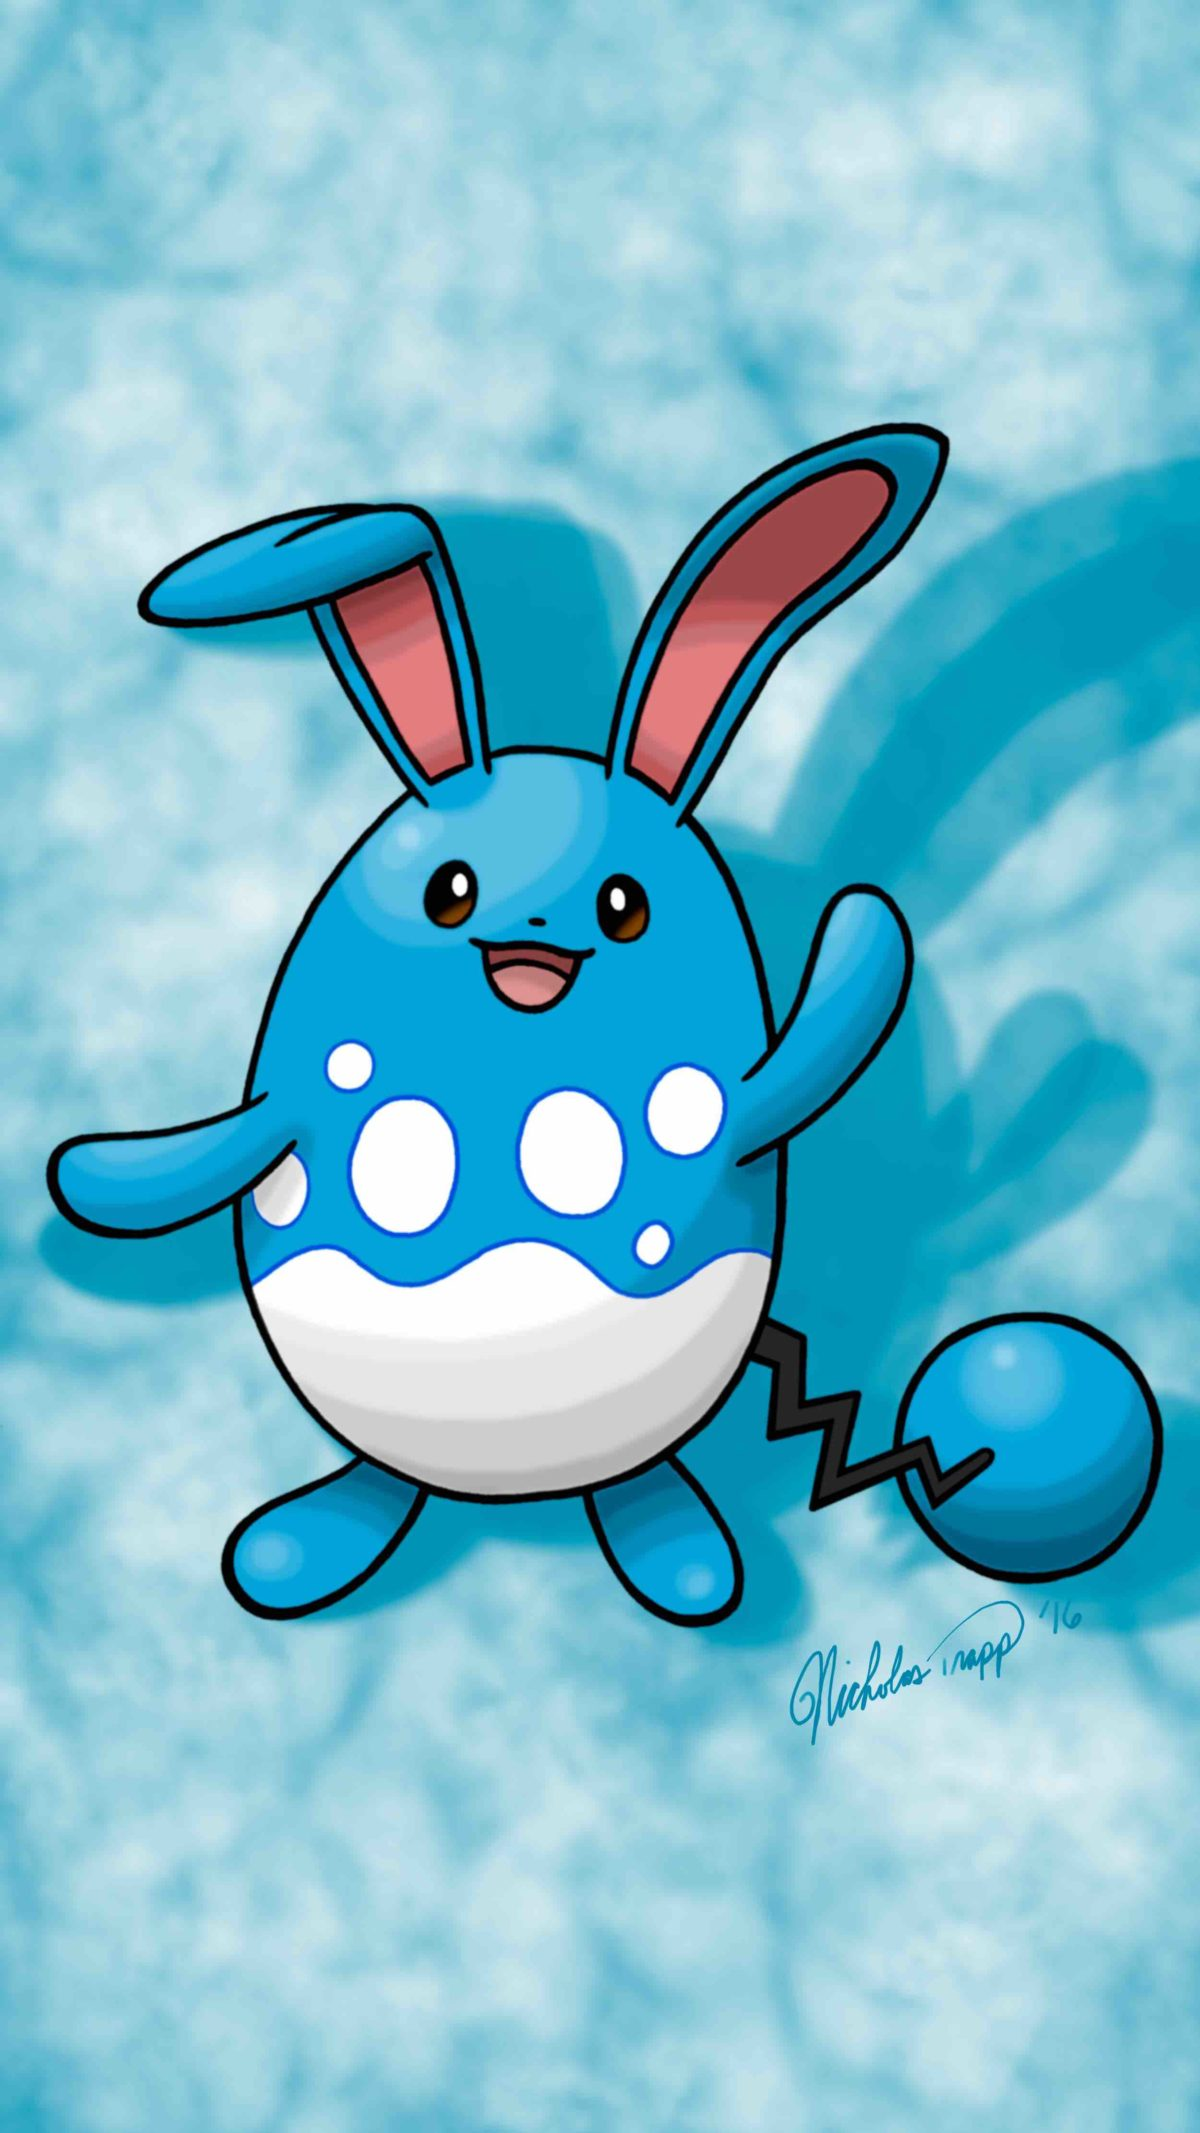 As requested here is the Azumarill Wallpaper | Pokémon | Pinterest …